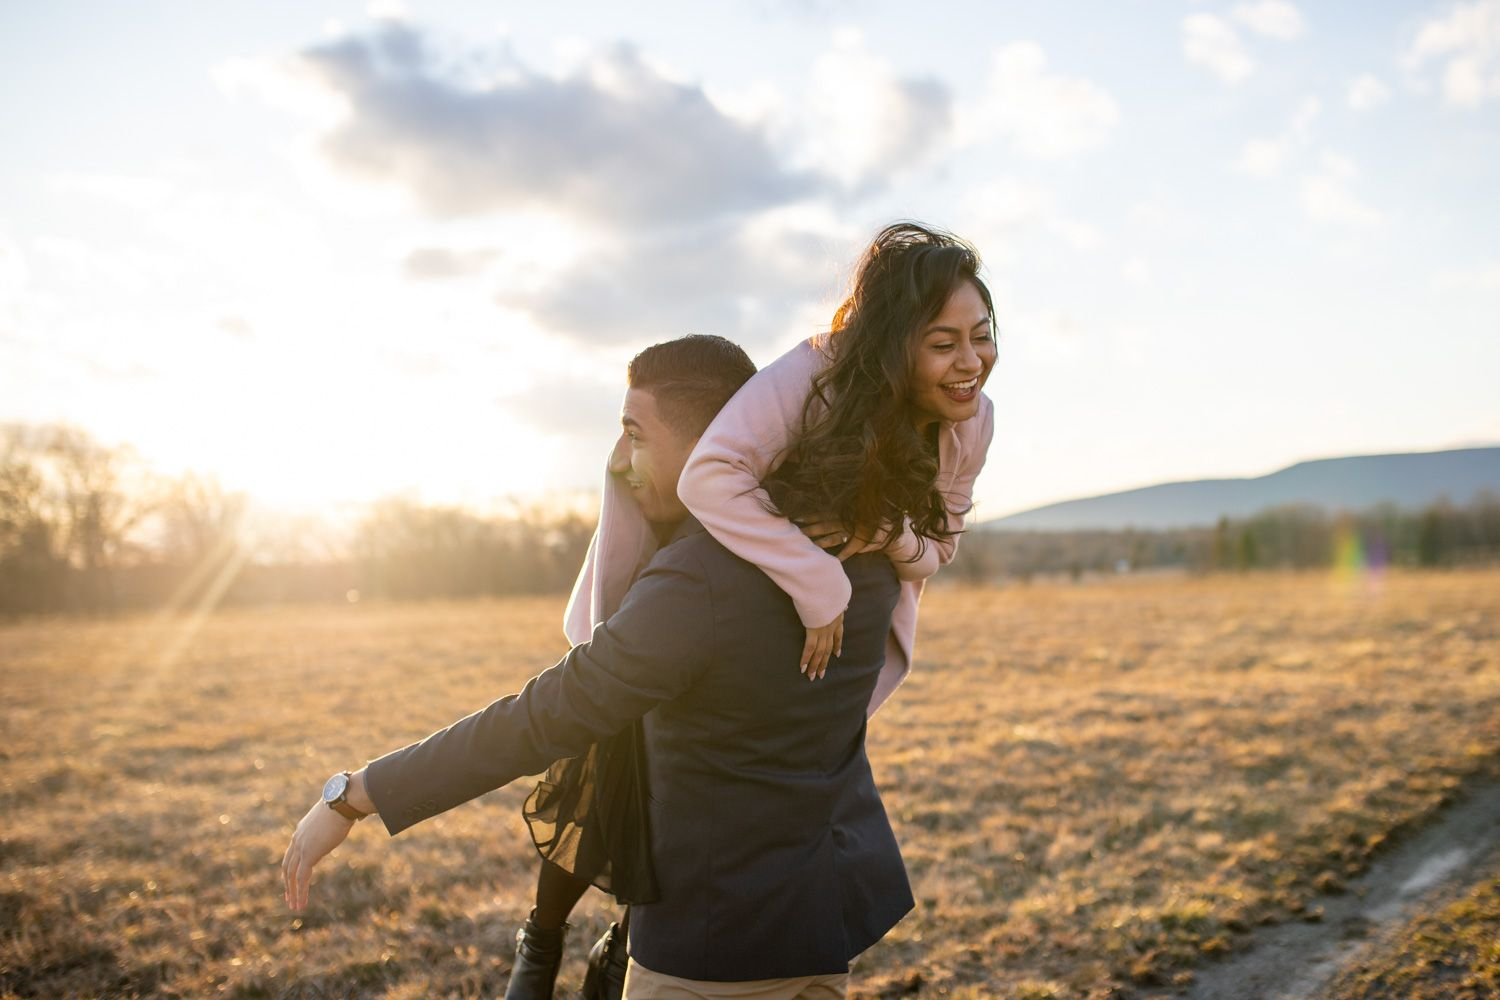 Couple laugh and play during candid adventure engagement session